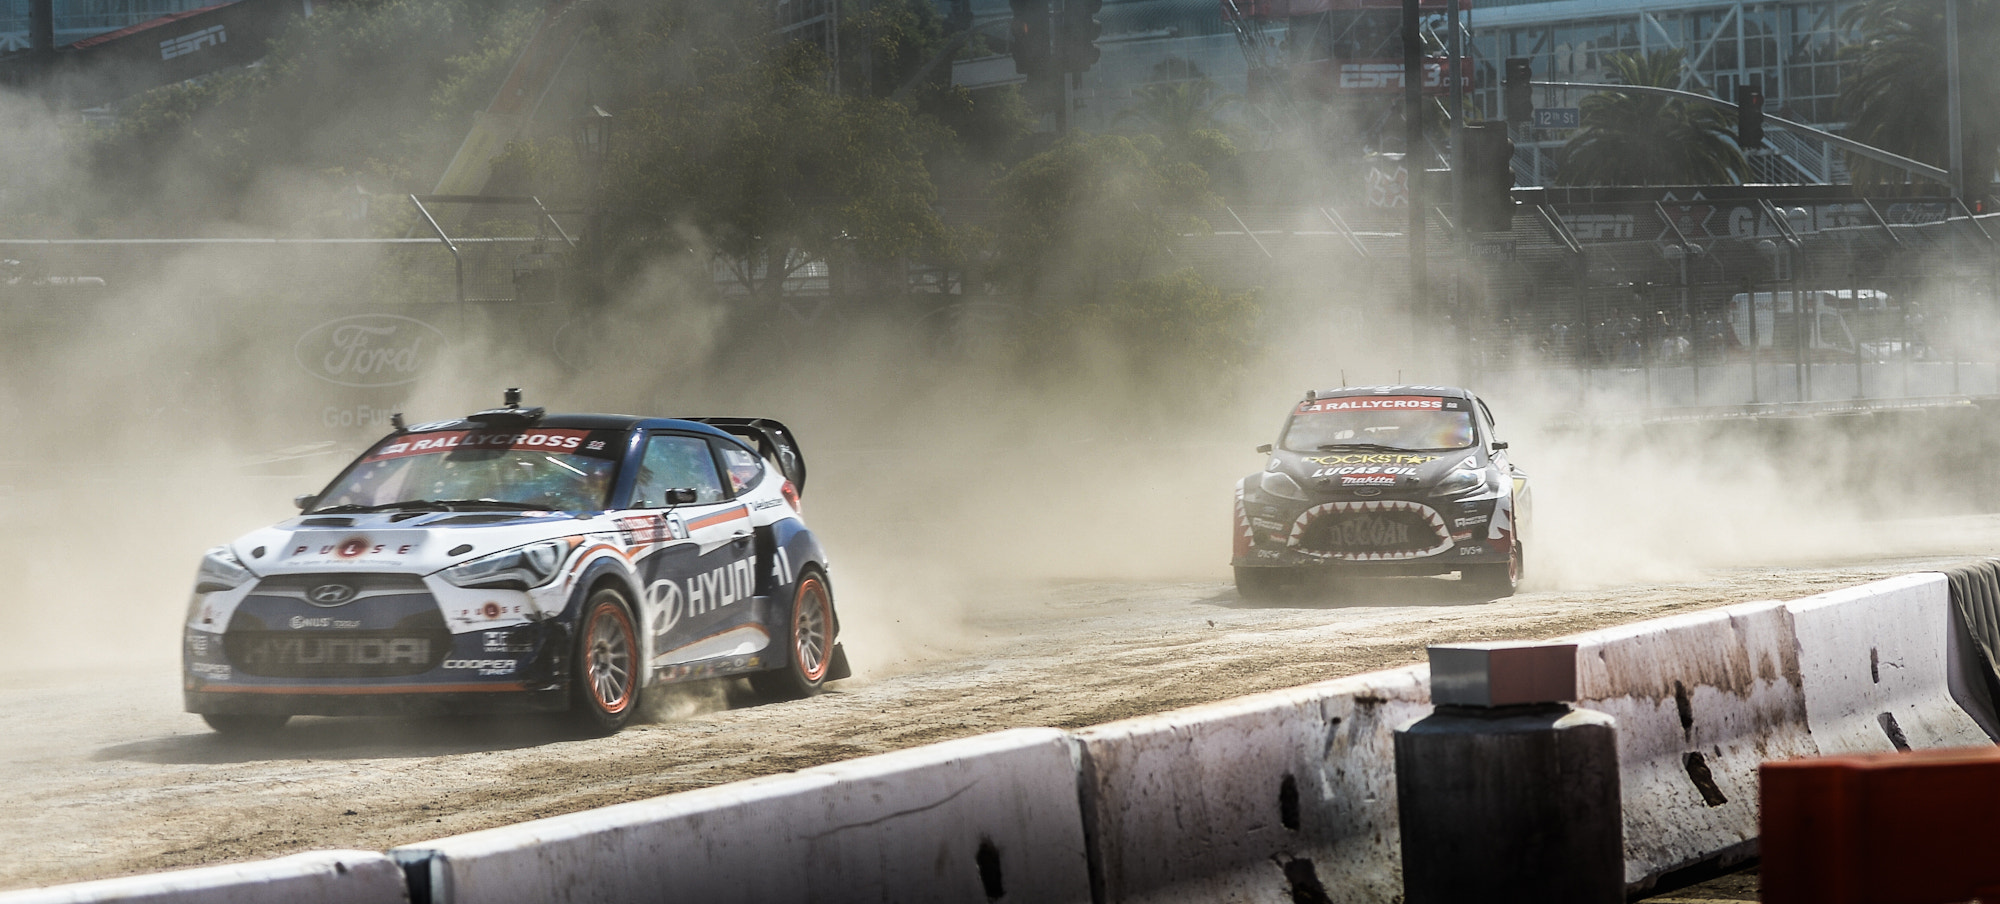 Photograph Global Rallycross Final Round at X-Games 2012 by Alexandria Huff on 500px